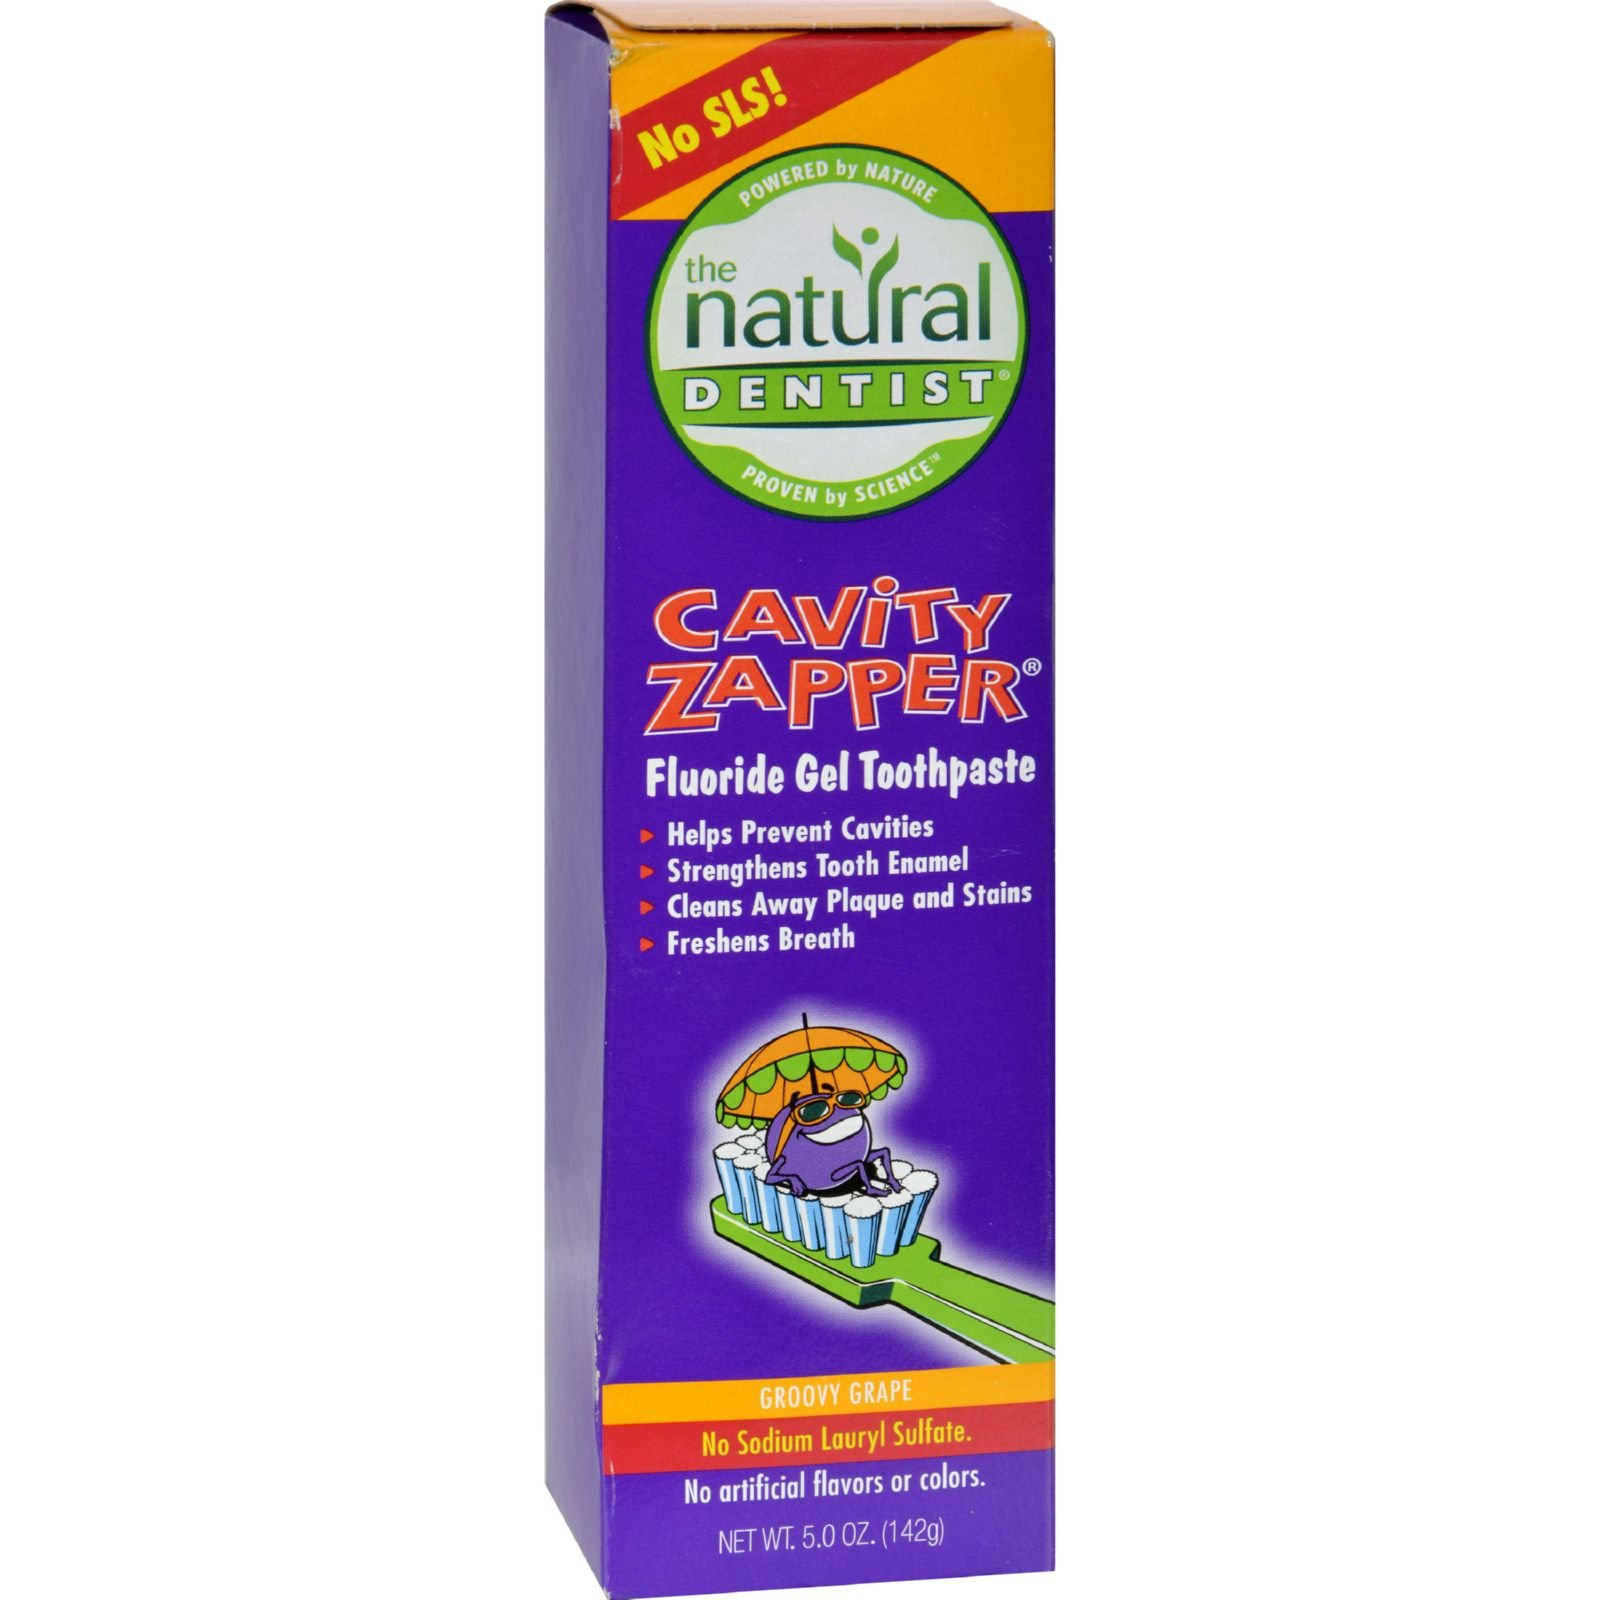 Natural Dentist Kids Cavity Zapper Toothpaste Buster Groovy Grape - No SLS - 5 oz (Pack of 4)